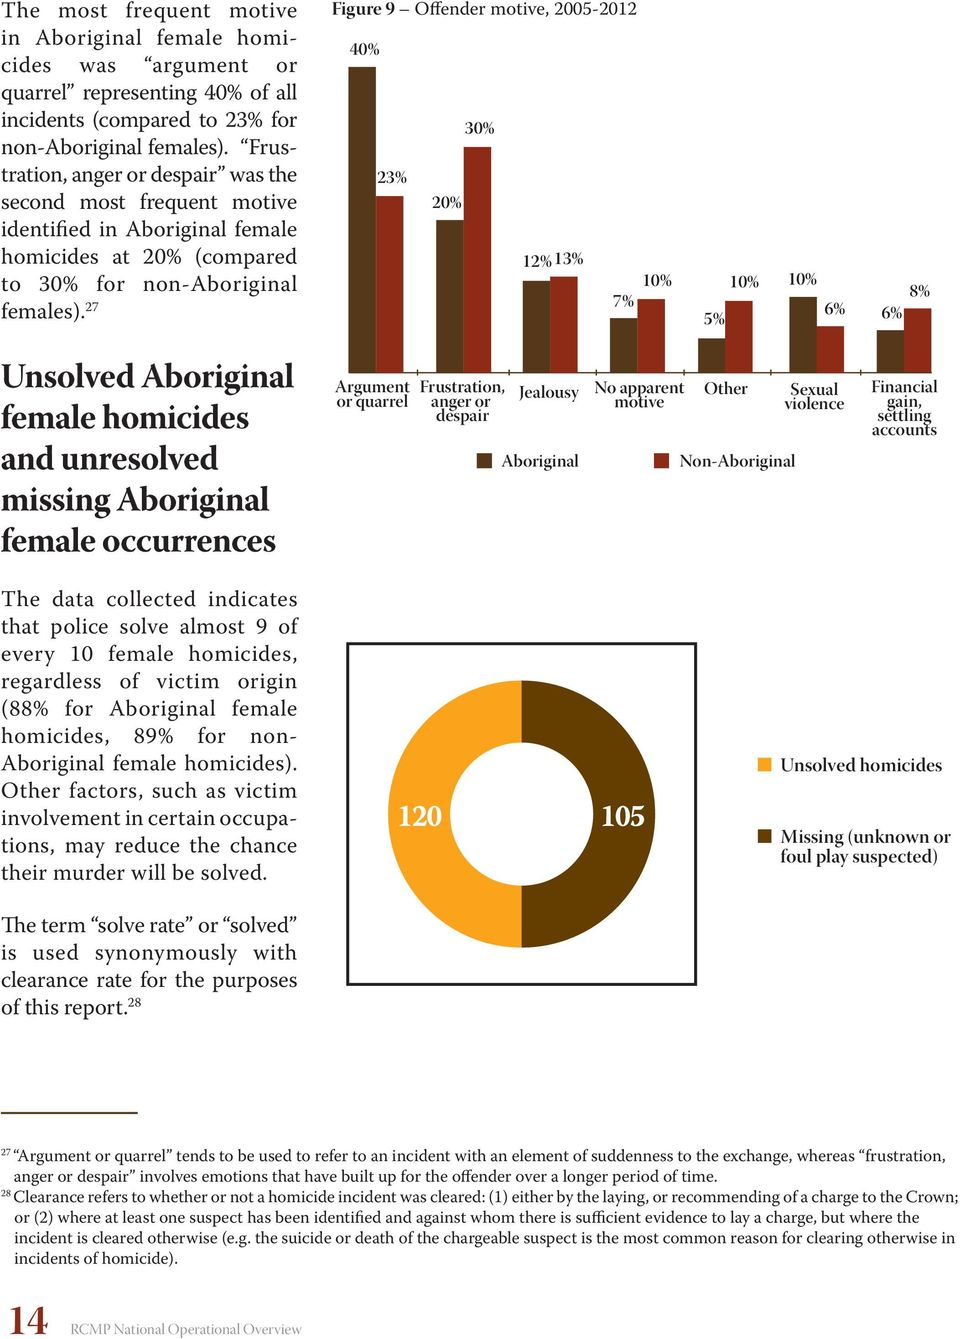 7 Figure 9 Offender motive, 5-4% % % % % % % 7% 5% % % 6% 8% 6% Unsolved Aboriginal female homicides and unresolved missing Aboriginal female occurrences Argument or quarrel Frustration, anger or